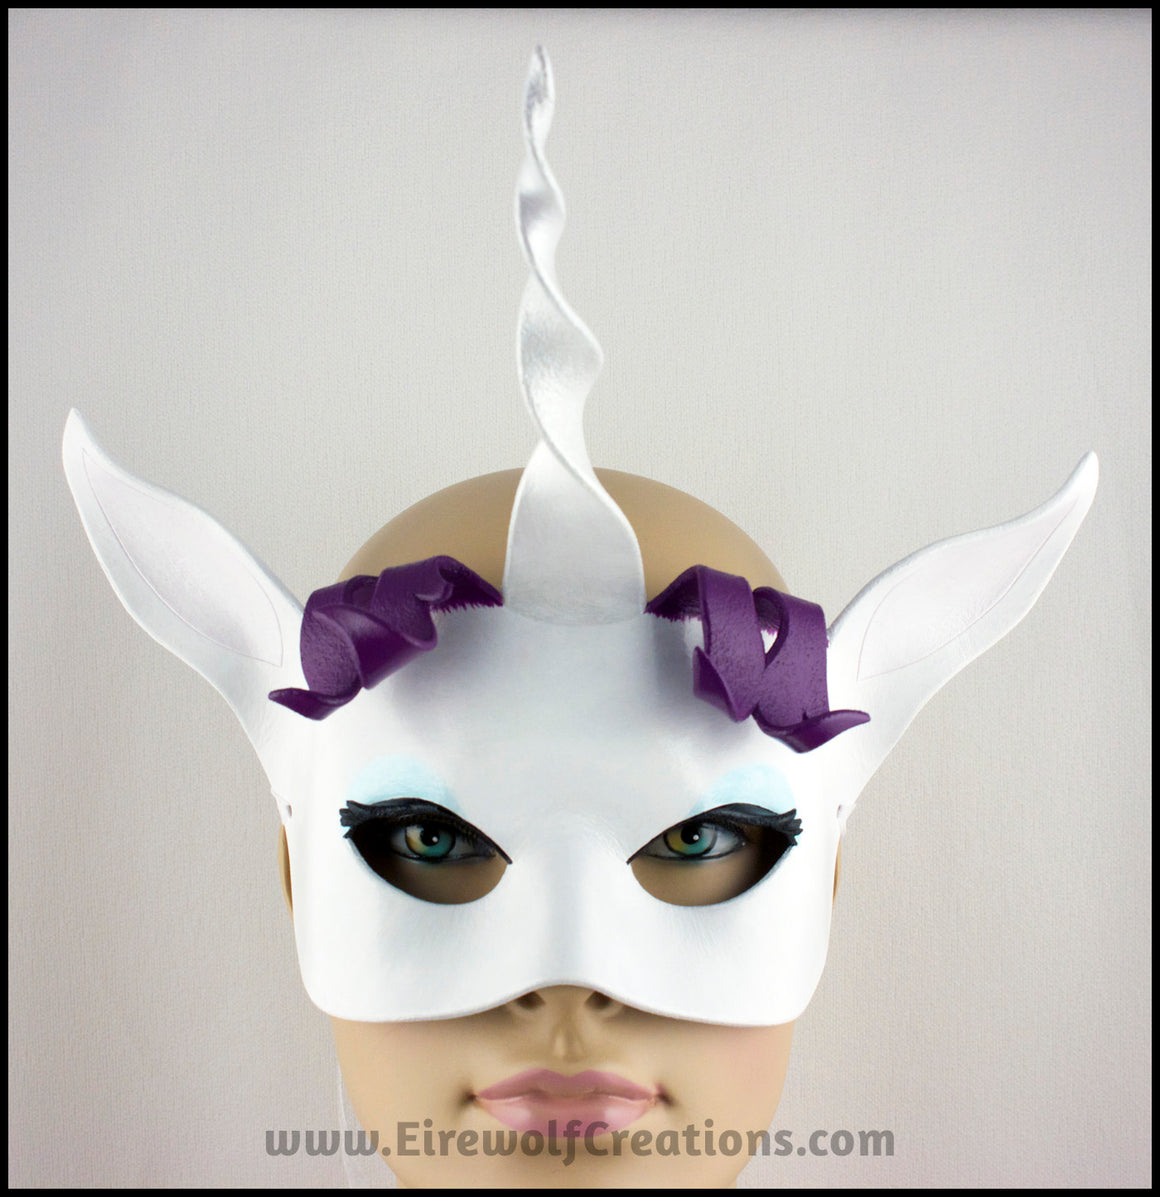 Cartoon Unicorn Rarity mask, handmade from leather for a masquerade costume or My Little Pony cosplay. By Erin Metcalf of Eirewolf Creations.